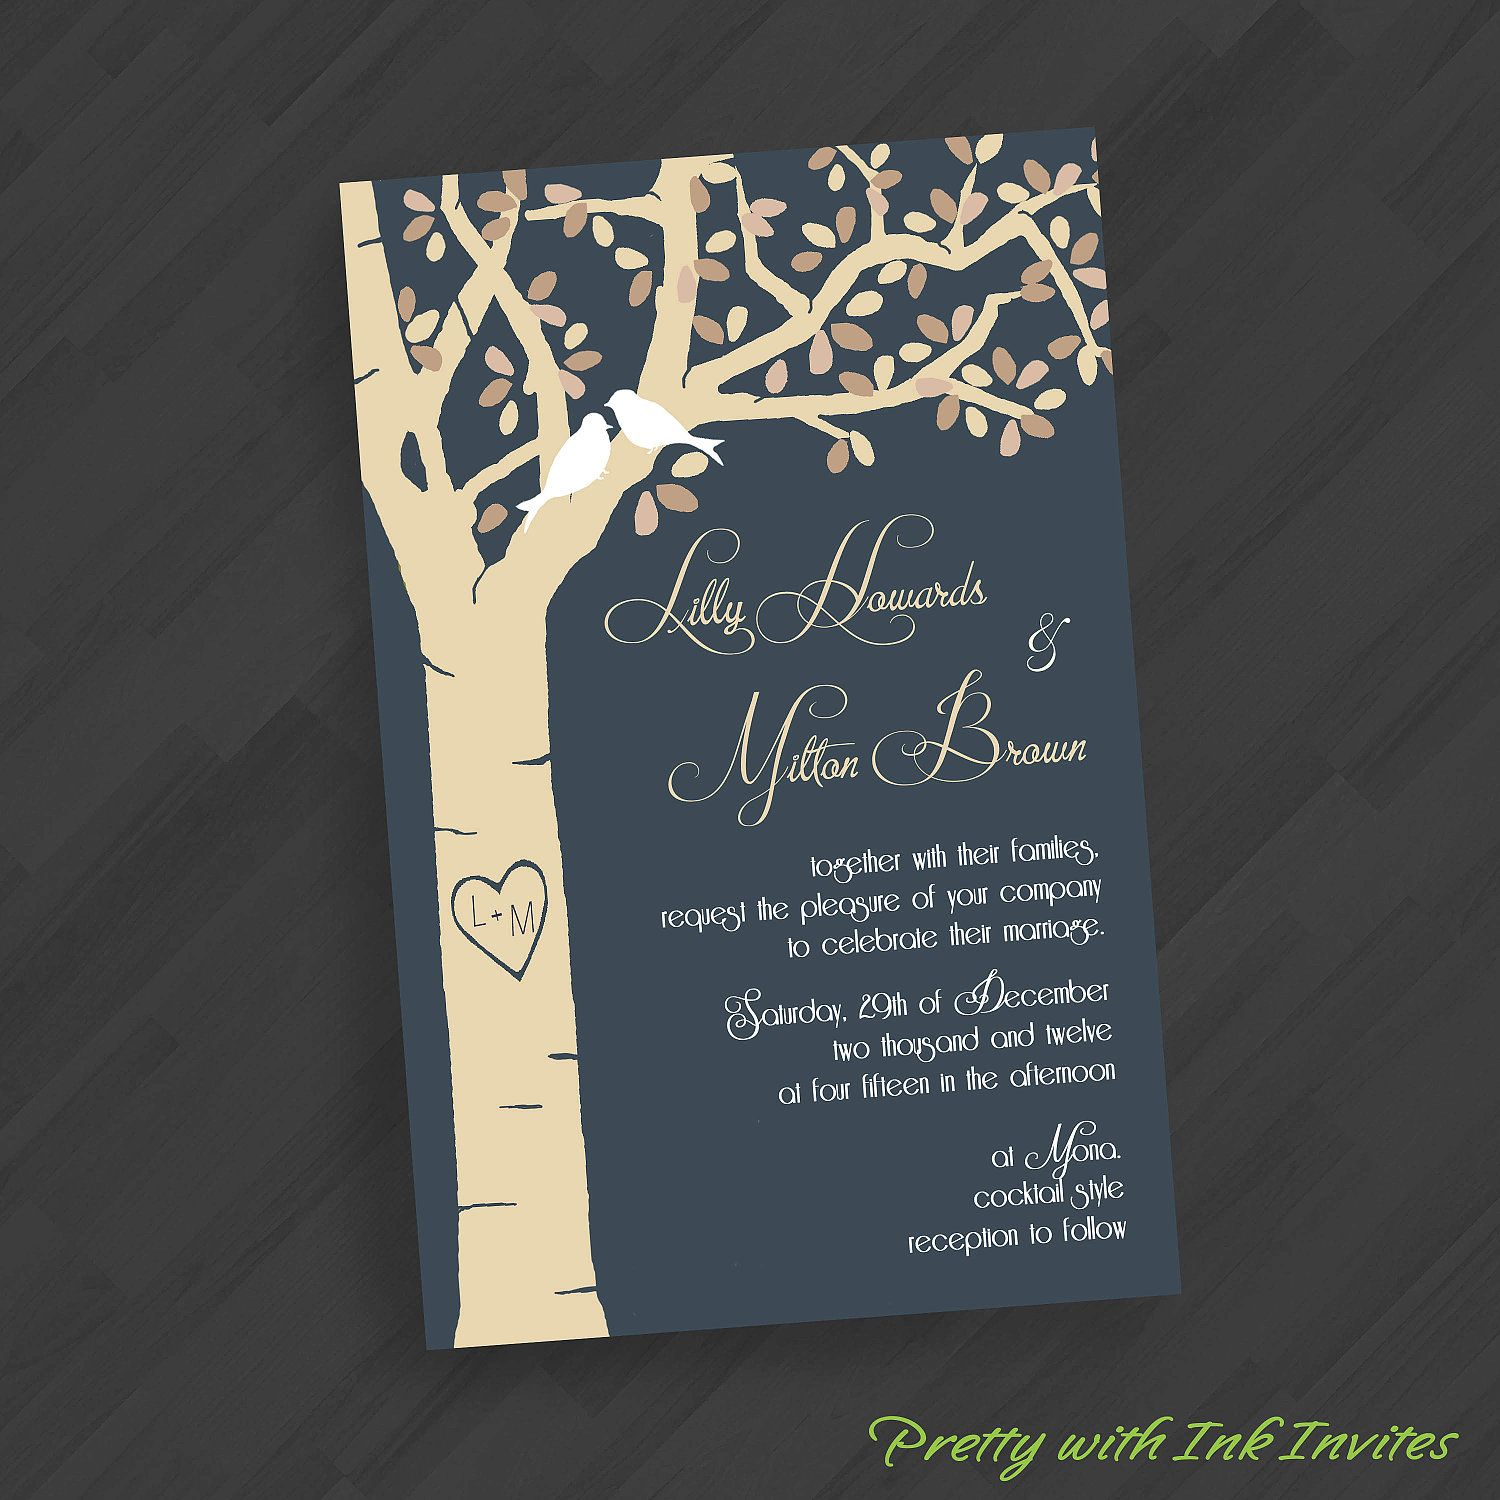 Special Event or Wedding Invitations - Carved Tree with Birdies ...